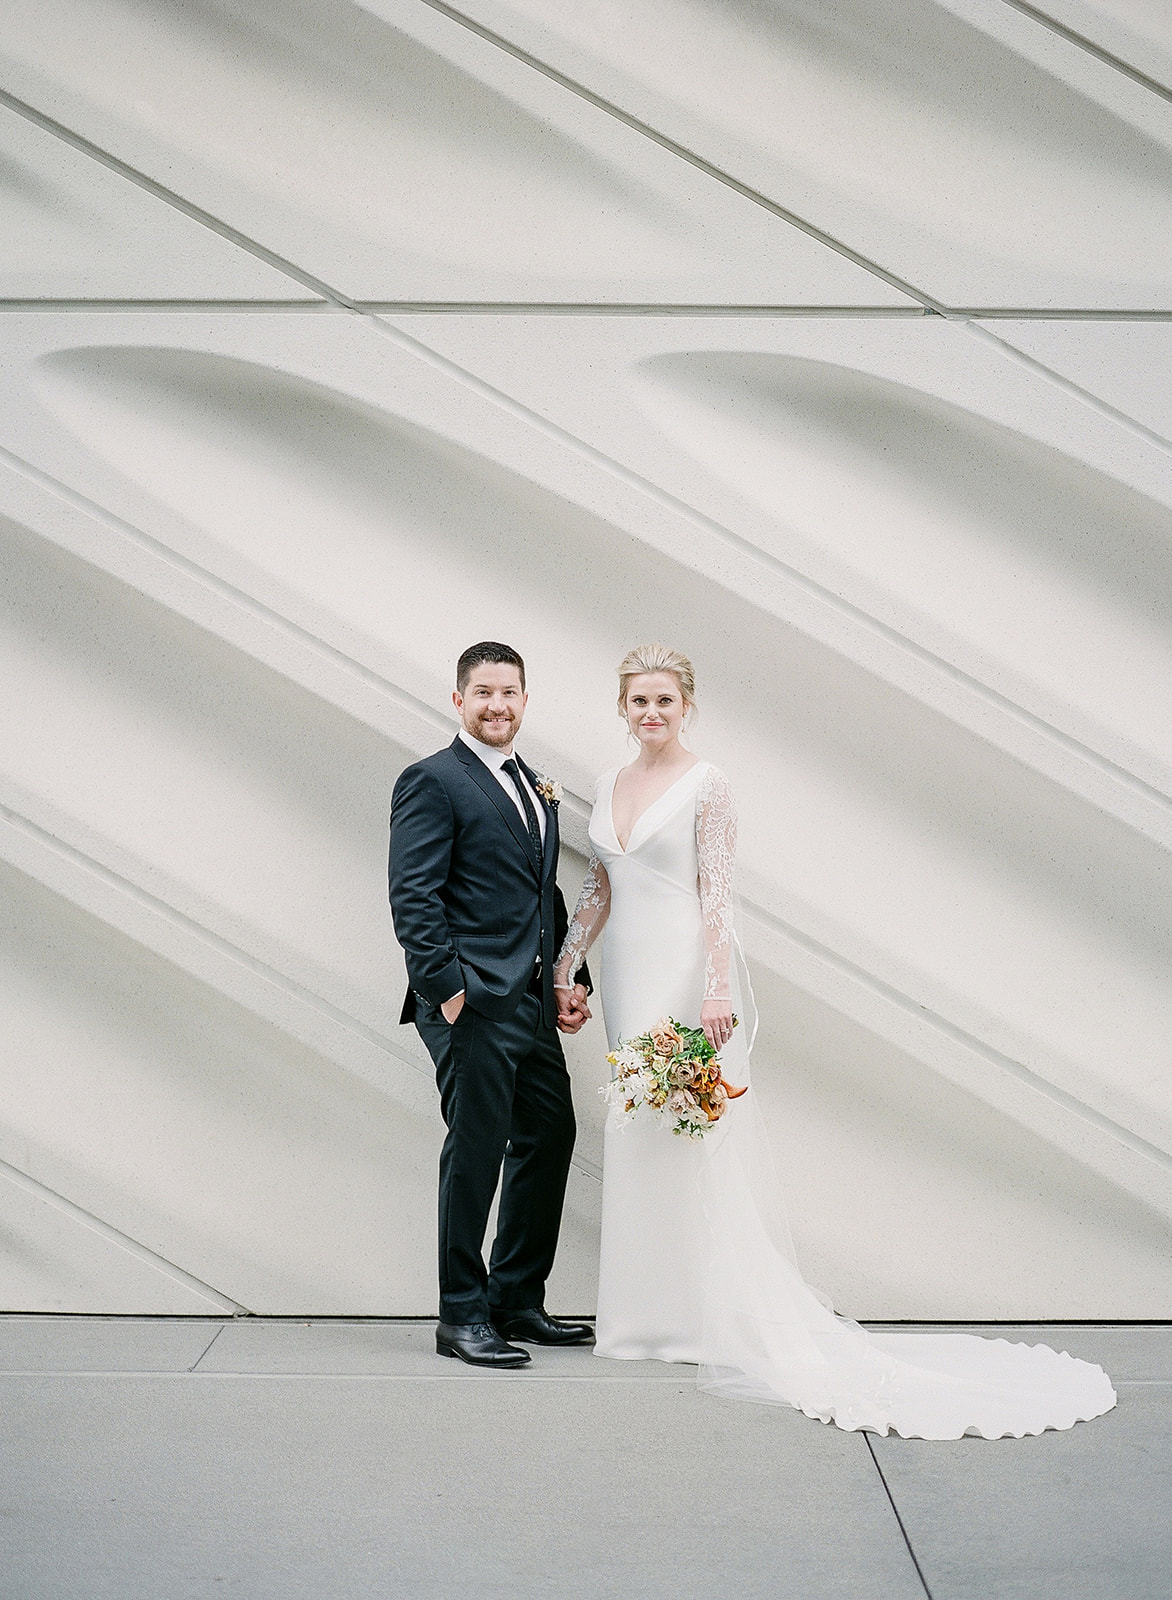 wedding portrait in front of modern white building